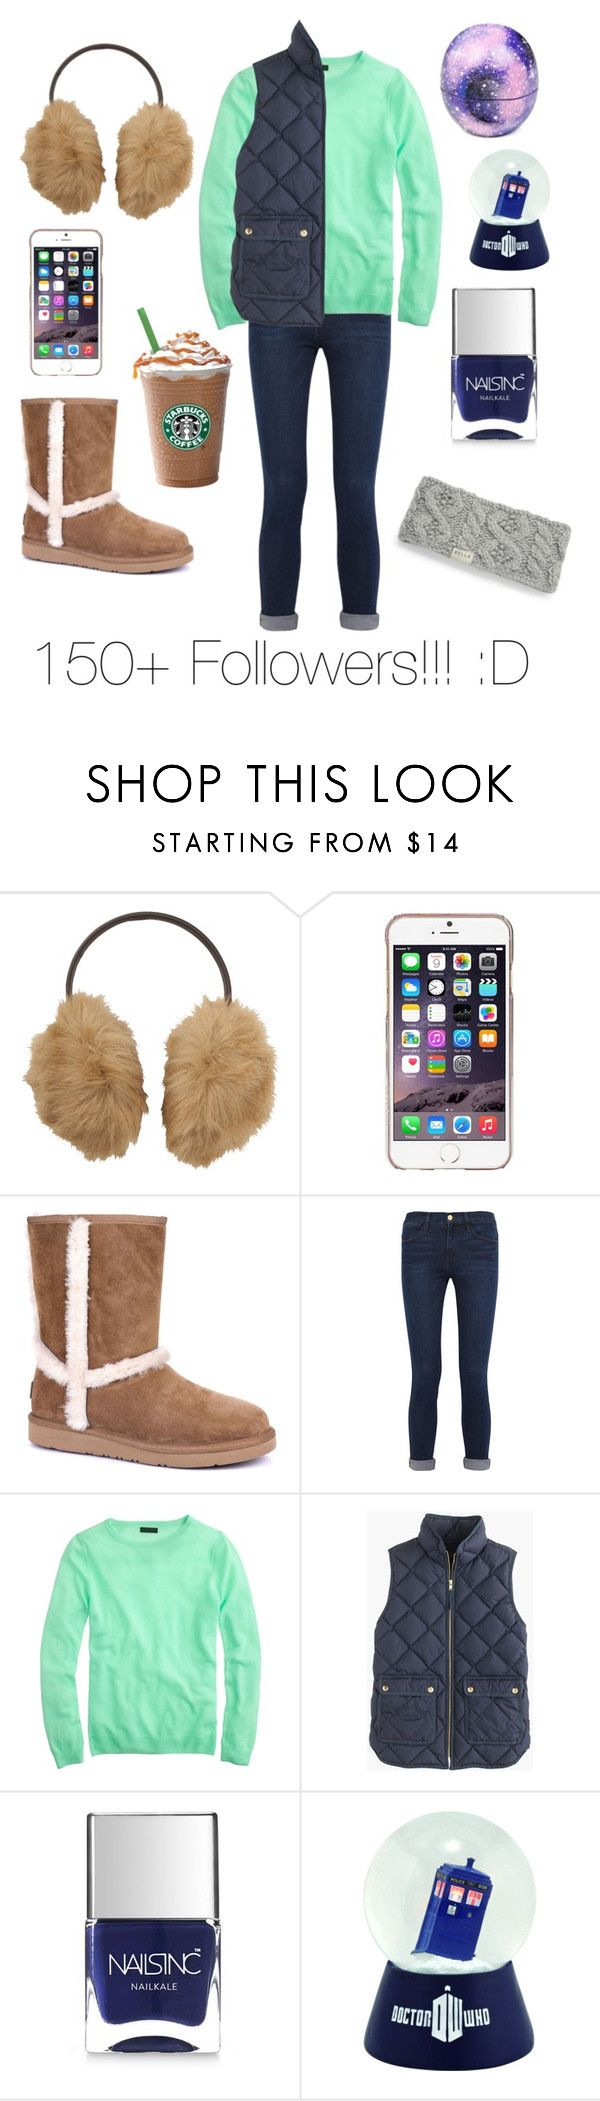 """Thank you followers!!!!!"" by tinyblueowls ❤ liked on Polyvore featuring Uniqlo, Agent 18, UGG Australia, Frame Denim, J.Crew, Nails Inc., Rella and Eos"